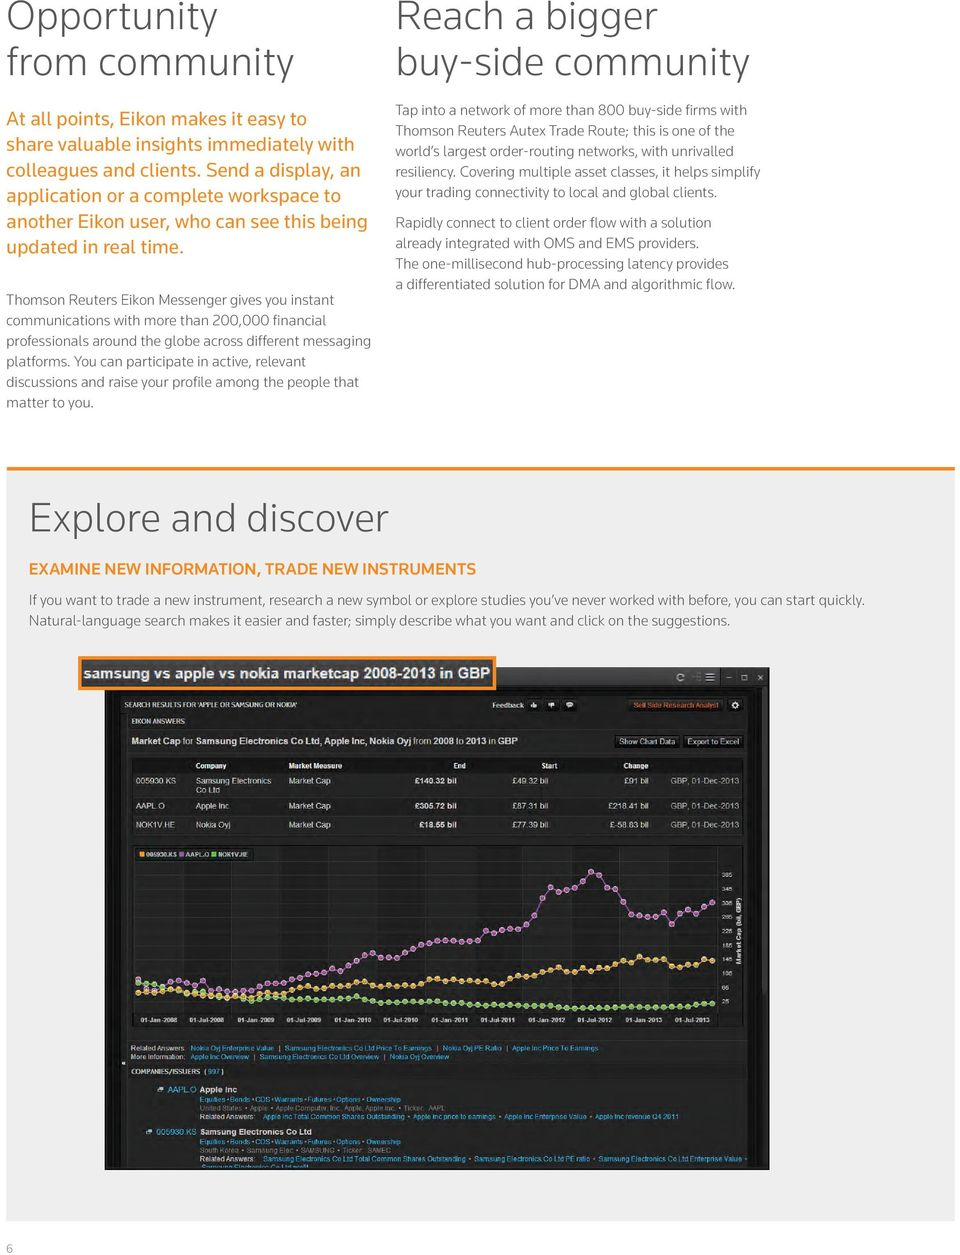 Thomson Reuters Eikon Messenger gives you instant communications with more than 200,000 financial professionals around the globe across different messaging platforms.